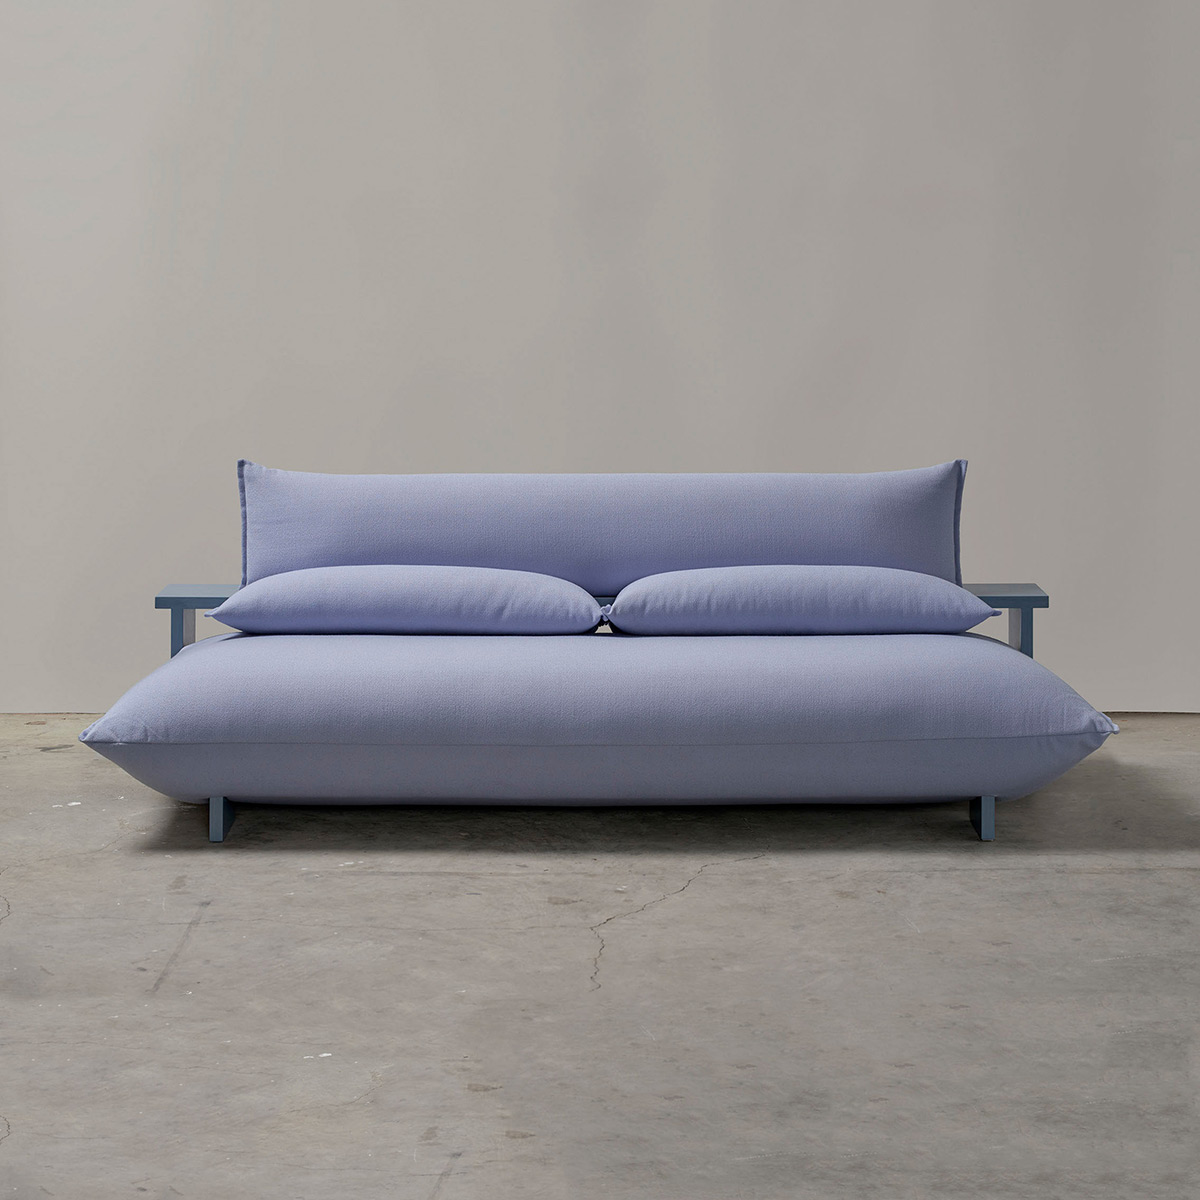 Press-Sofa-Studio-Truly-Truly-01